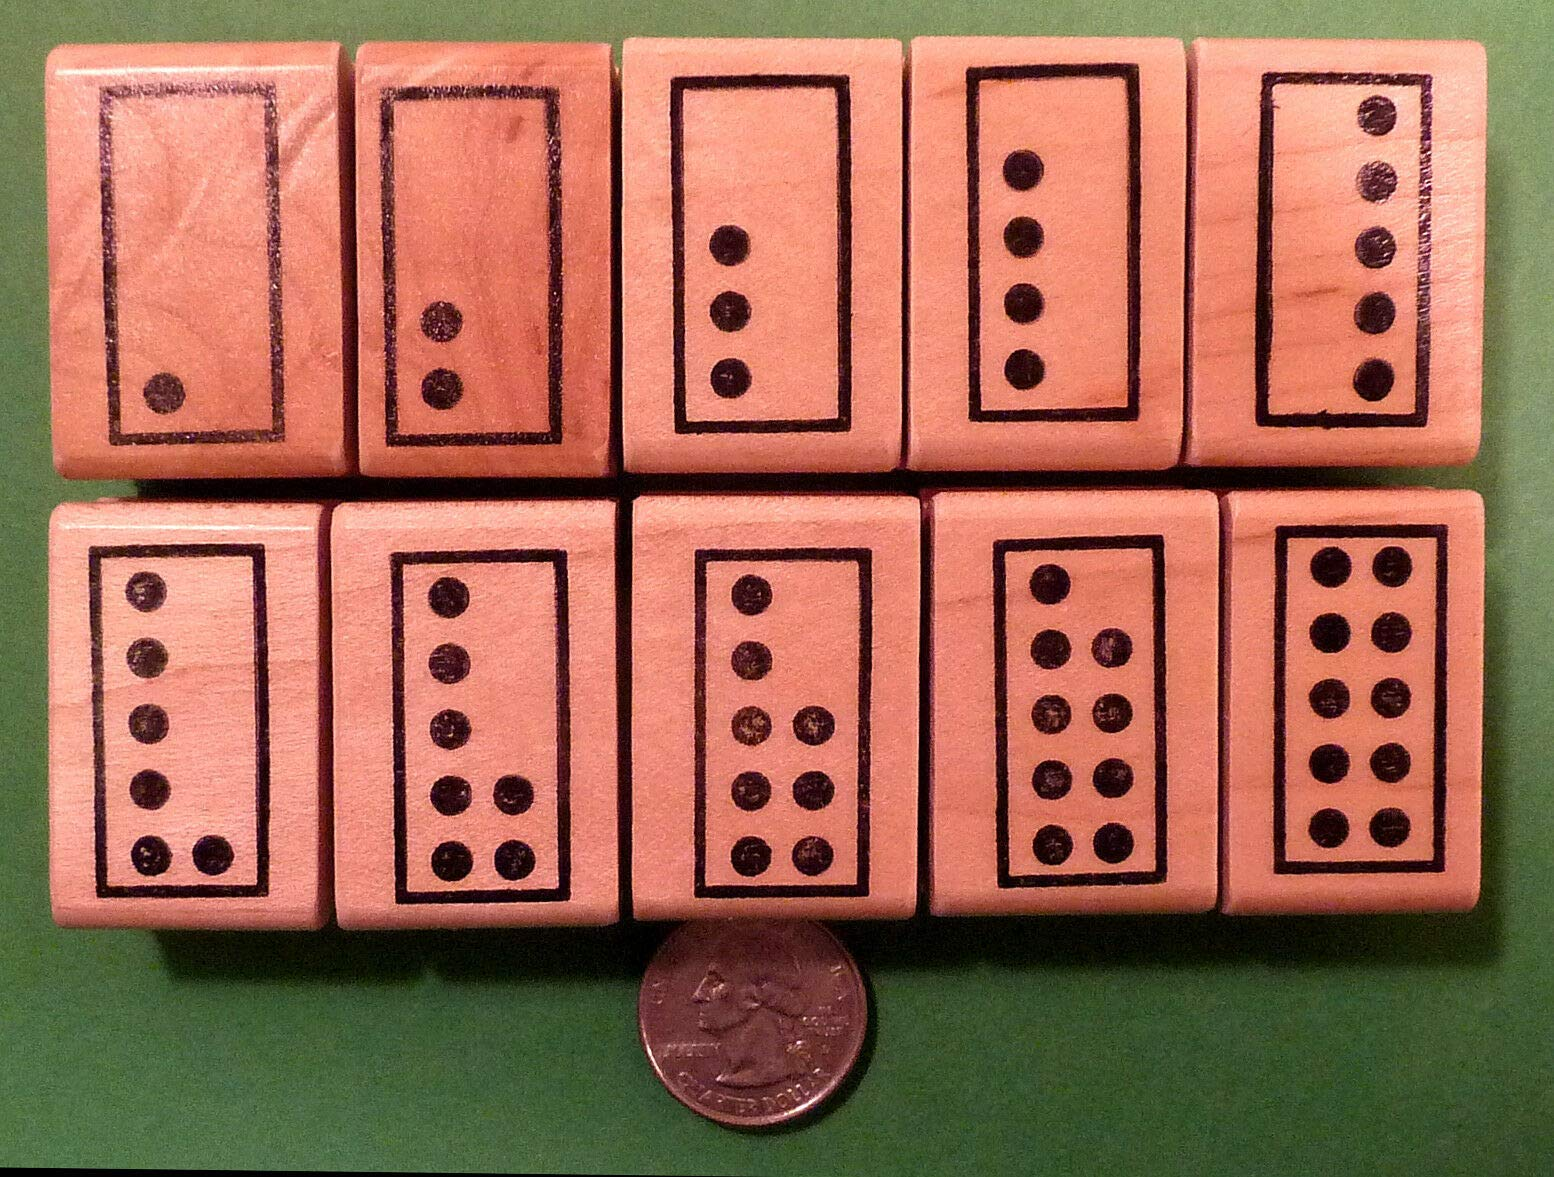 Singapore Math Number Tiles, Teacher's Set of 10 Wood Mounted Rubber Stamps